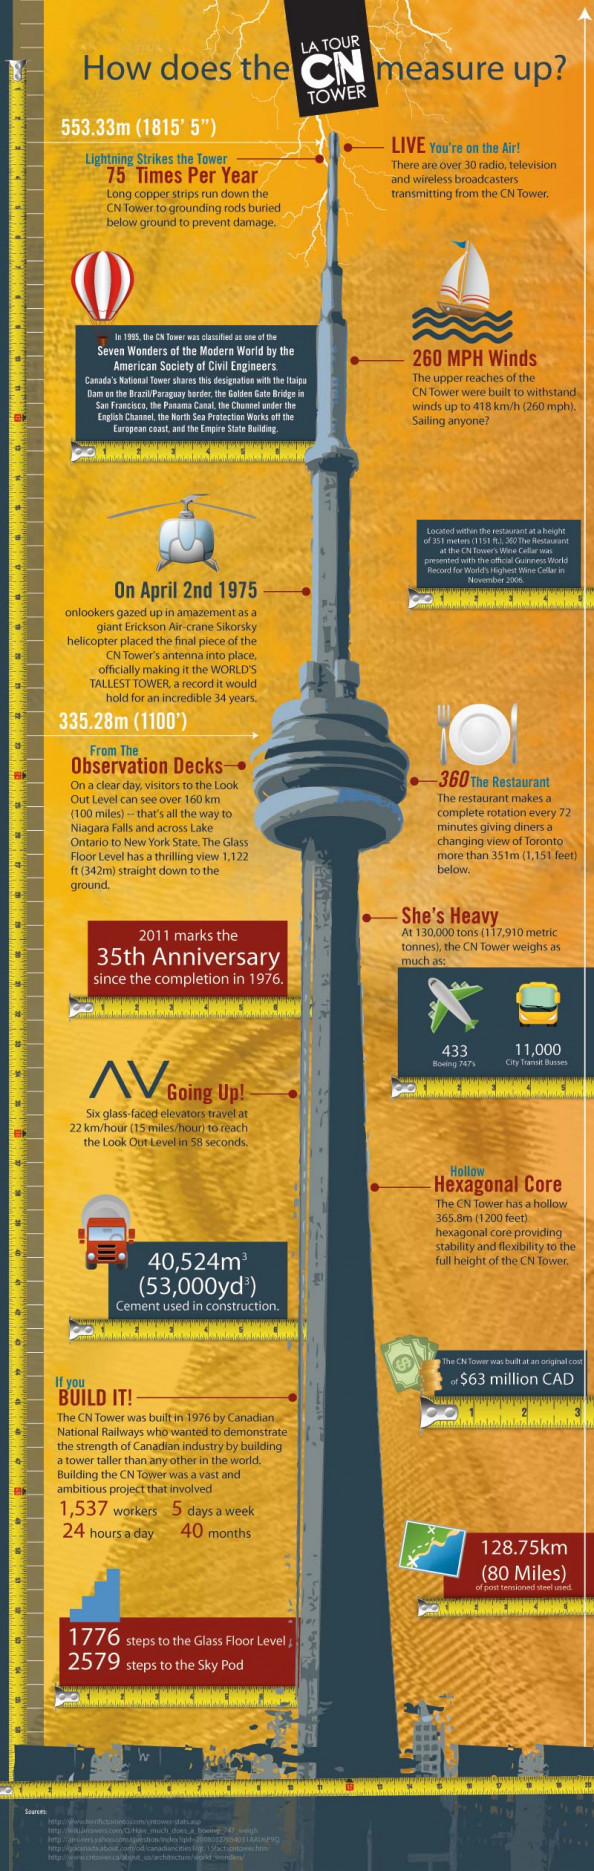 How Does the CN Tower Measure Up Infographic